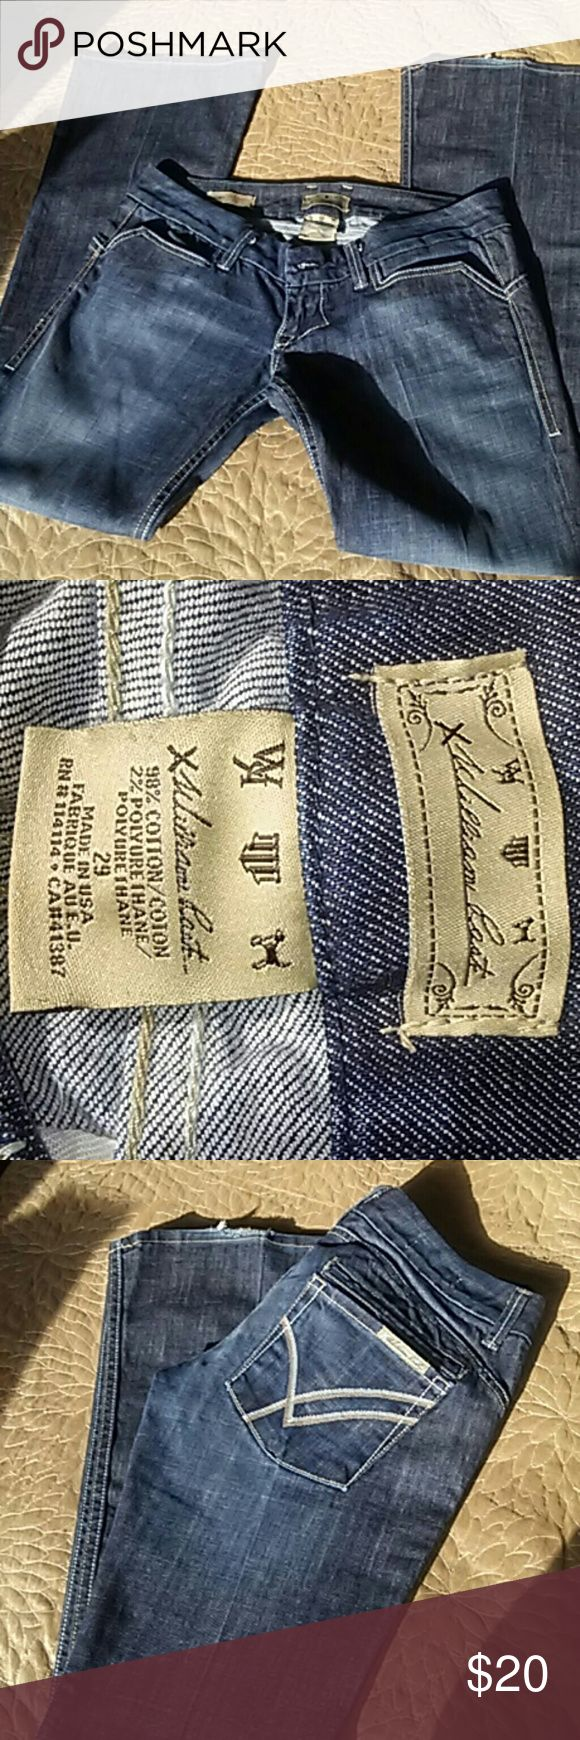 Women's William Rast Jeans Size 29 very nice, low on hips, wide leg.  Slight distress on bottom, see pic. William Rast Jeans Flare & Wide Leg